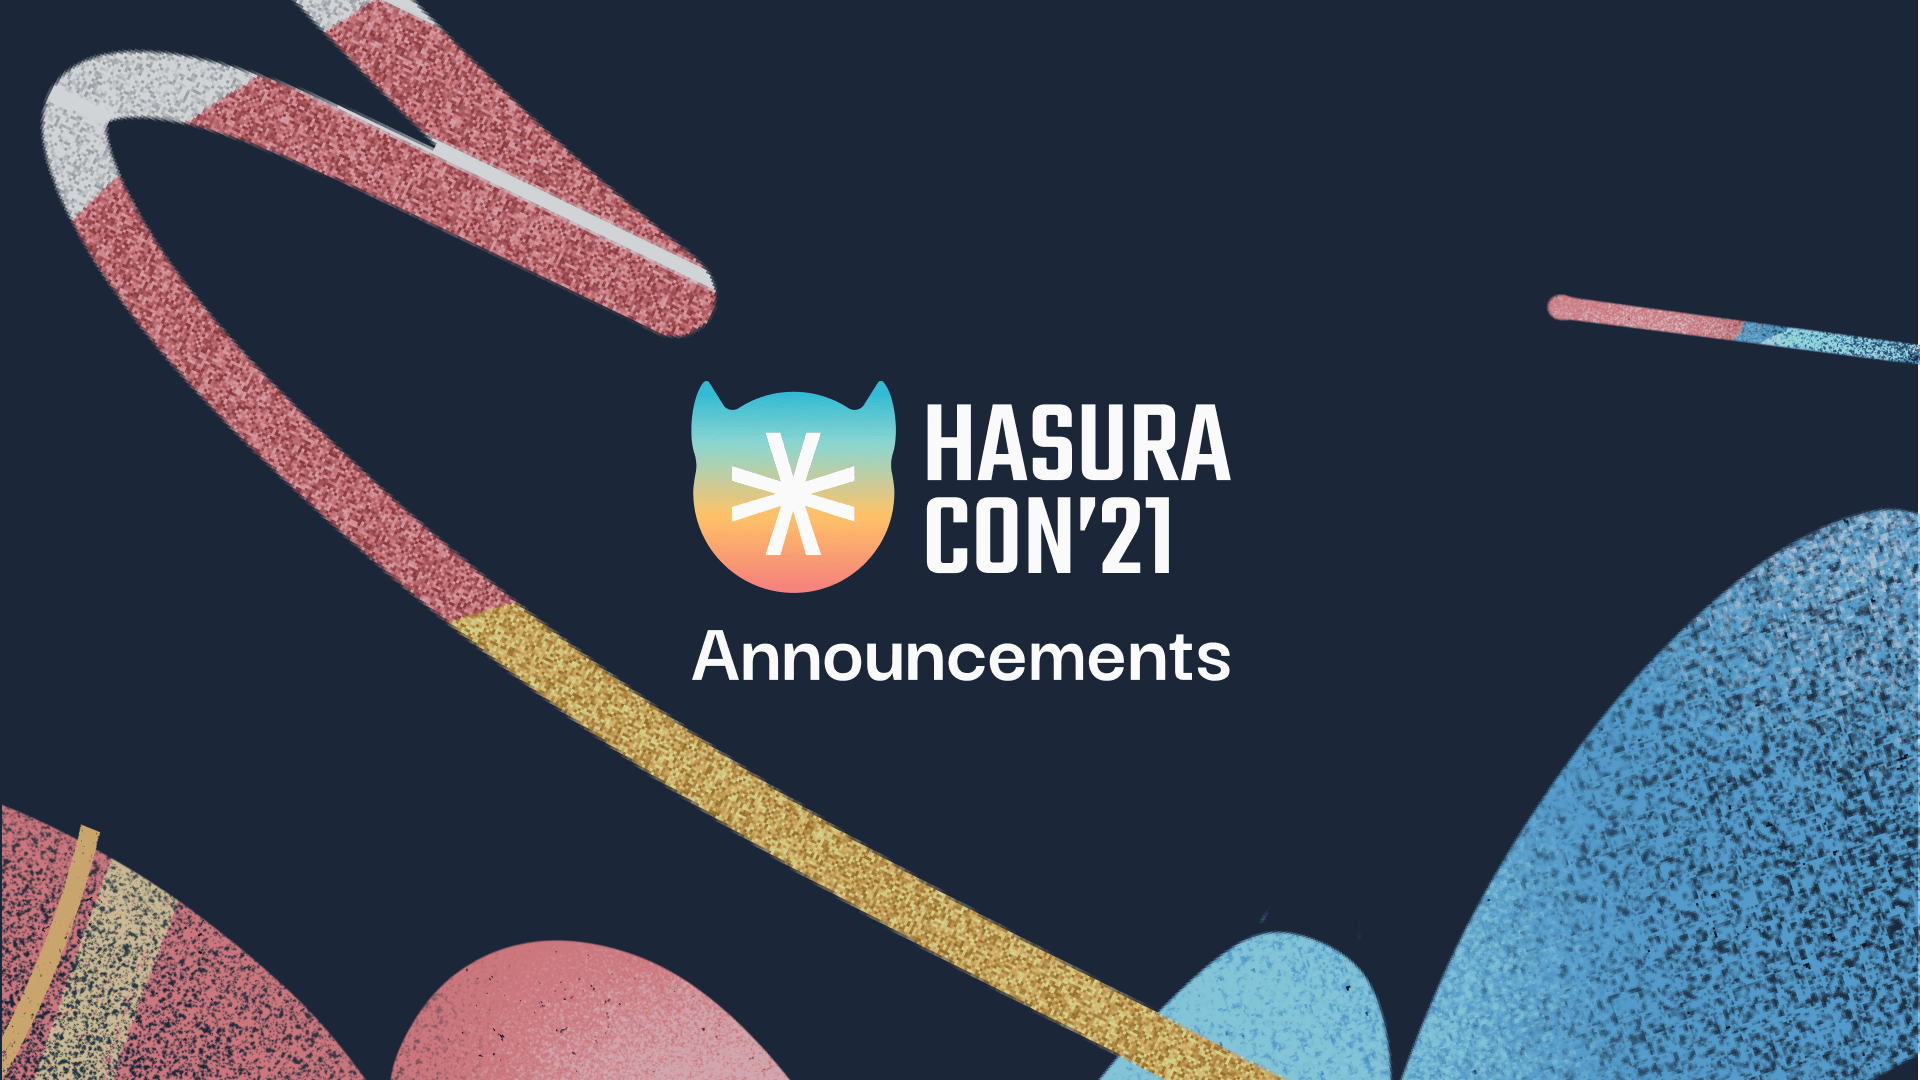 HasuraCon'21 - Cross Database Joins with GraphQL and all the other exciting announcements